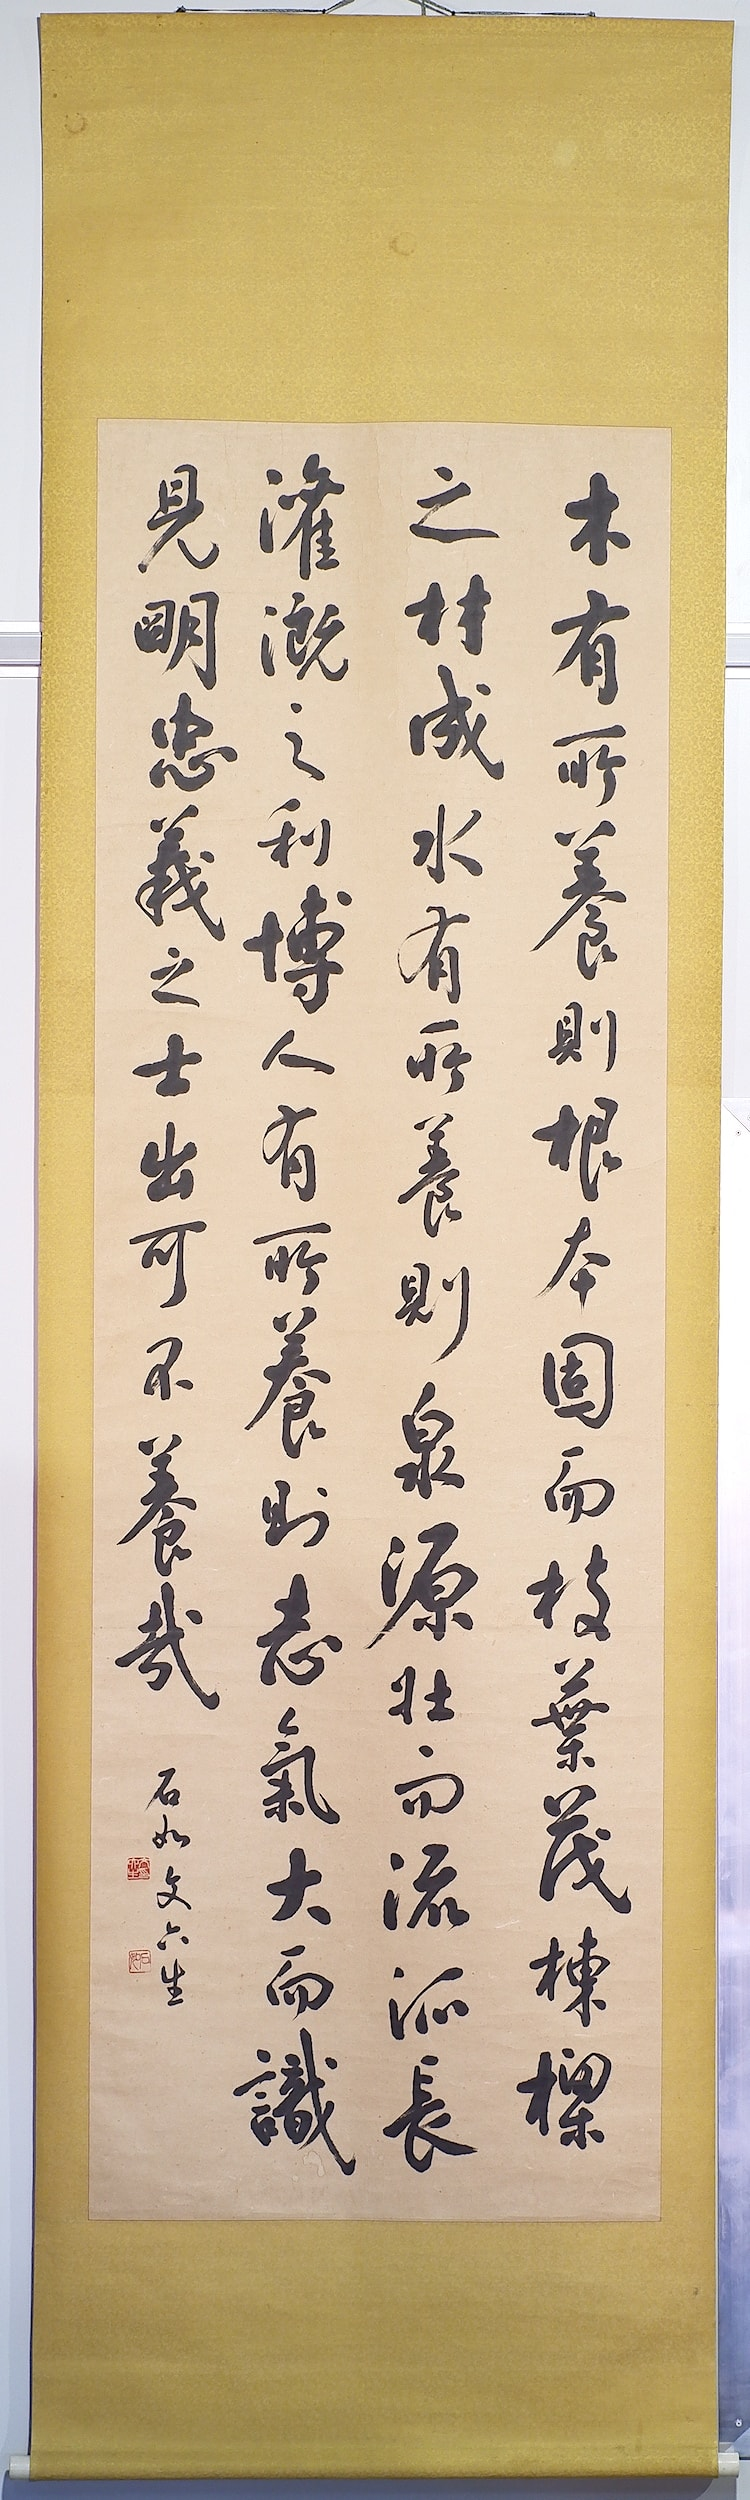 'Large Korean Calligraphy Scroll Ink on Paper with Silk Backing'